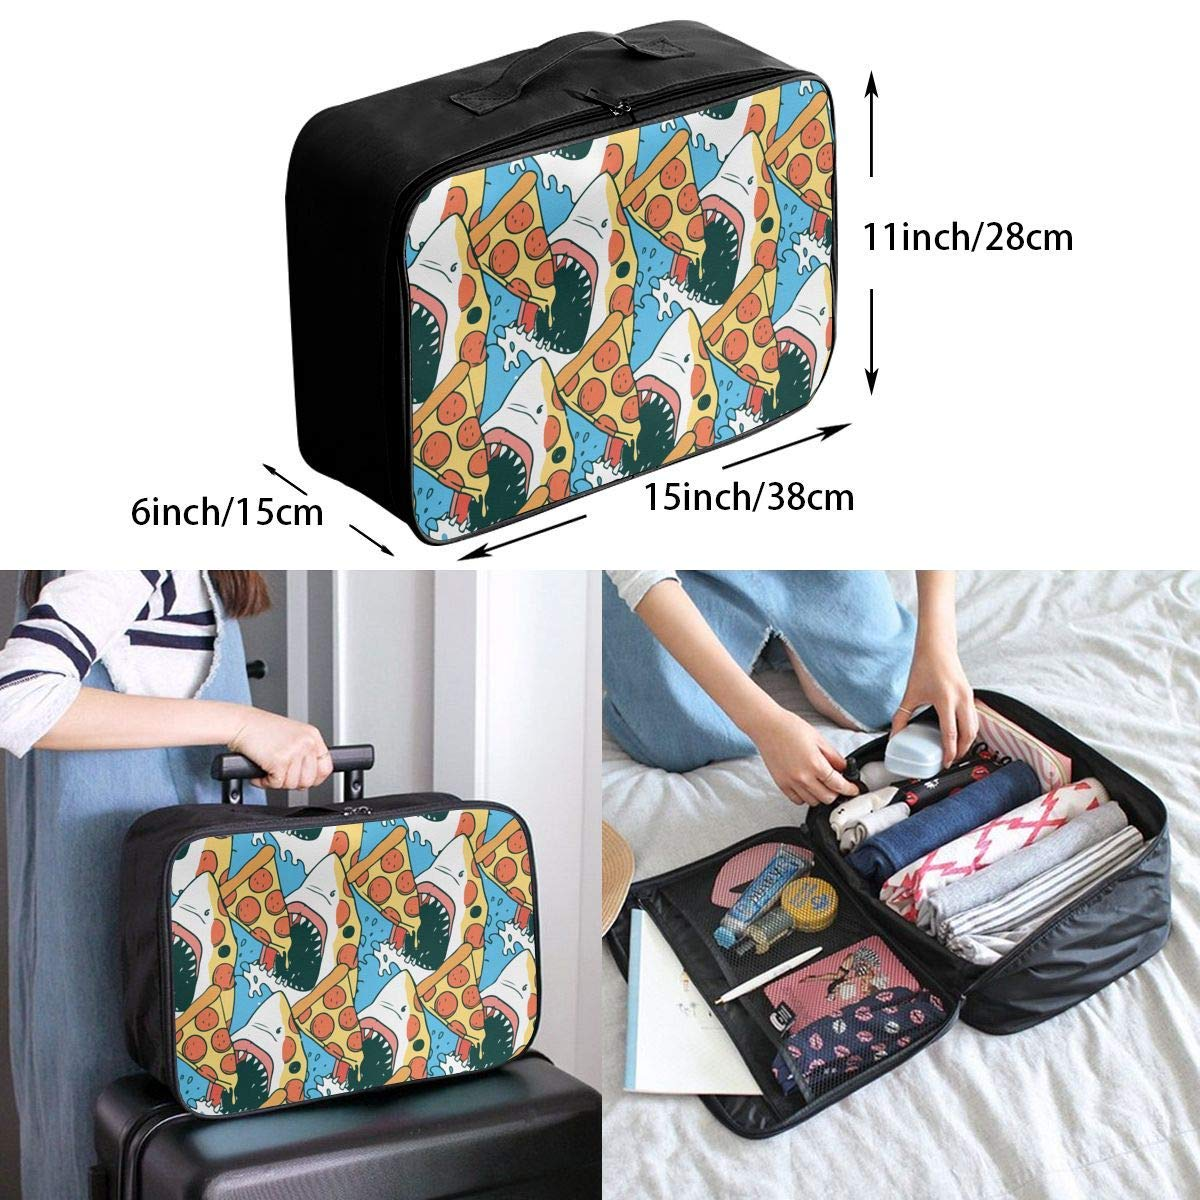 Pizza Shark JTRVW Luggage Bags for Travel Travel Lightweight Waterproof Foldable Storage Carry Luggage Duffle Tote Bag